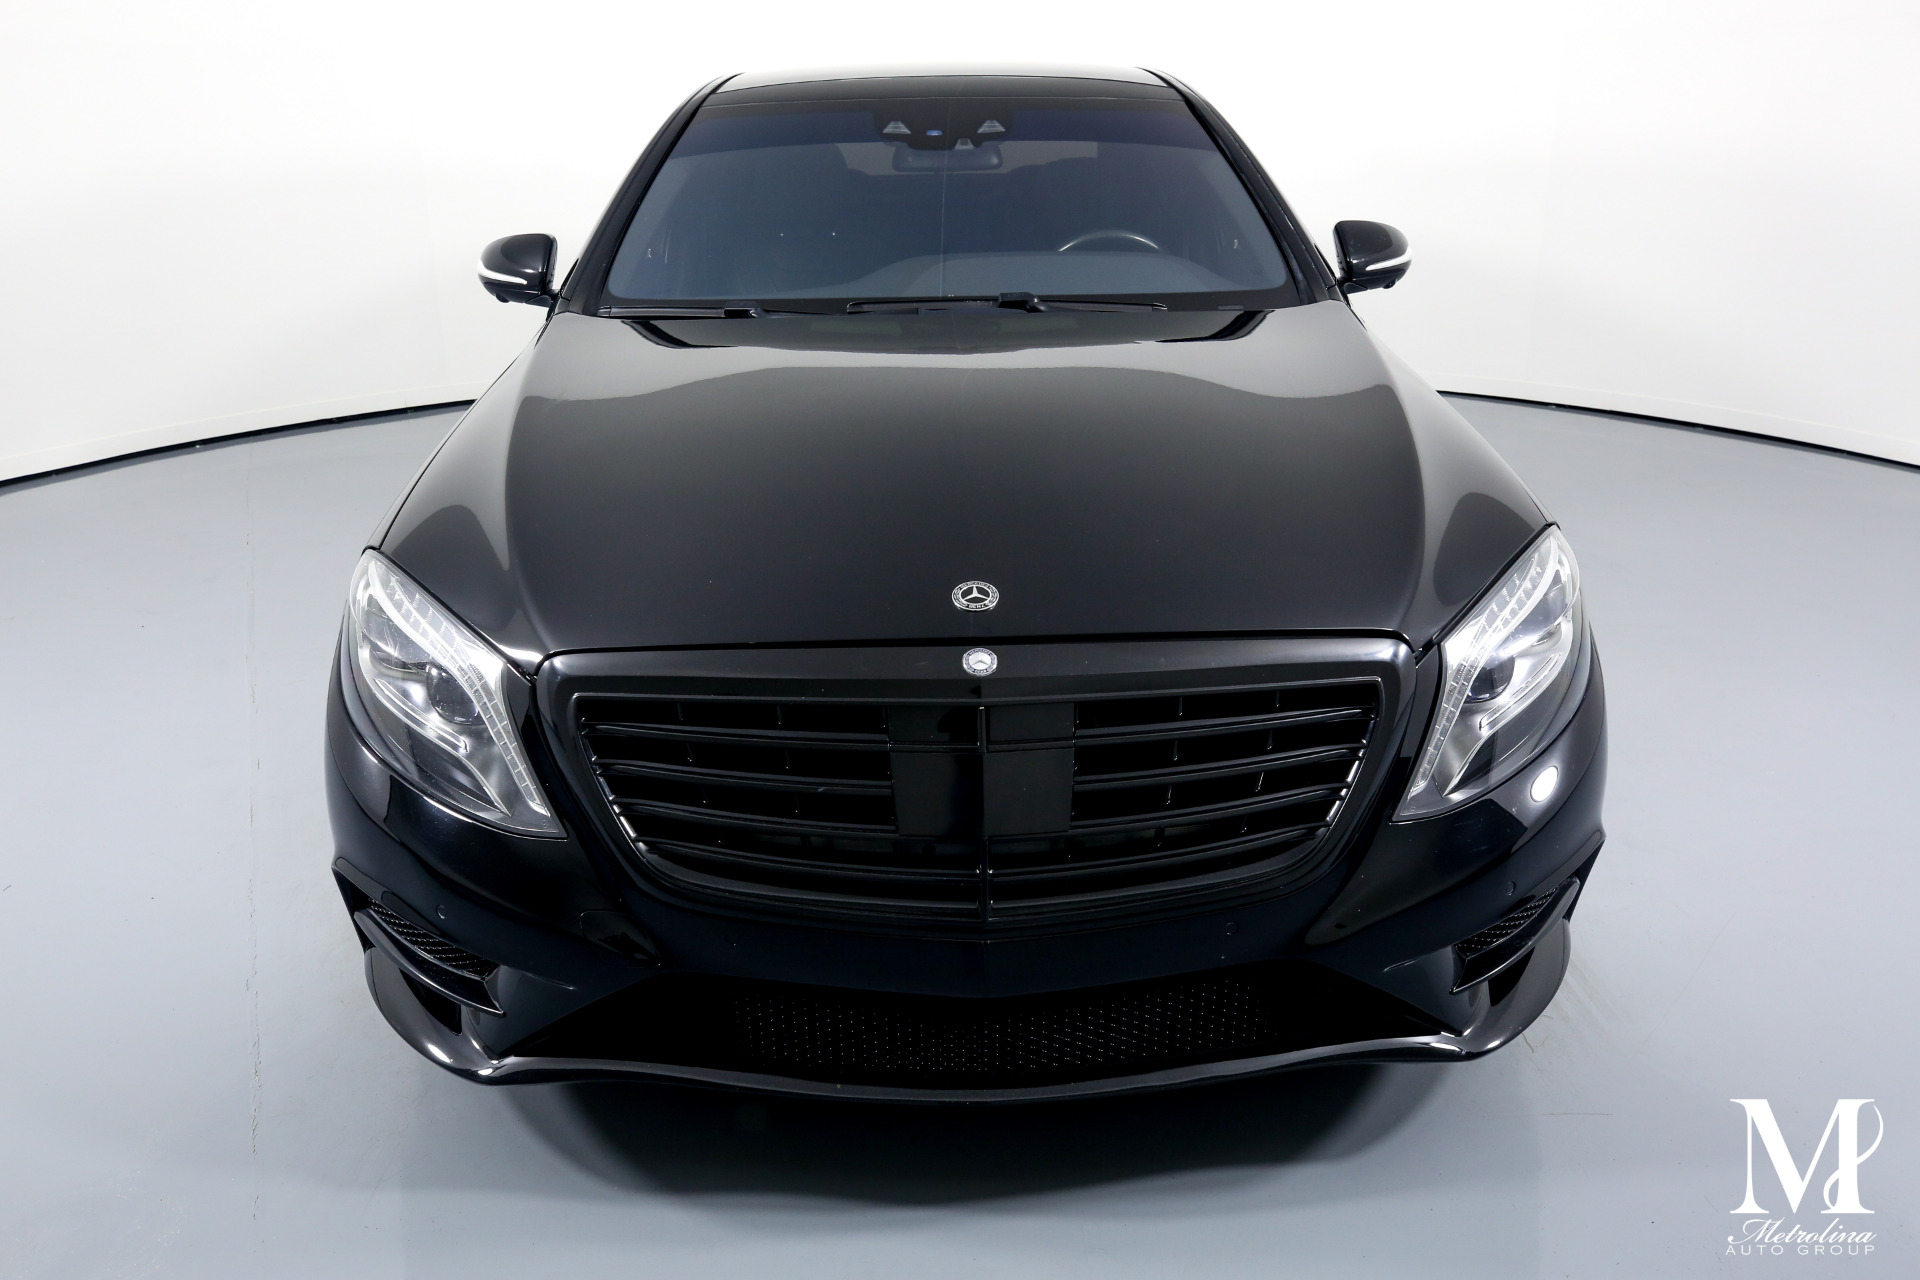 Used 2017 Mercedes-Benz S-Class S 550 for sale Call for price at Metrolina Auto Group in Charlotte NC 28217 - 3